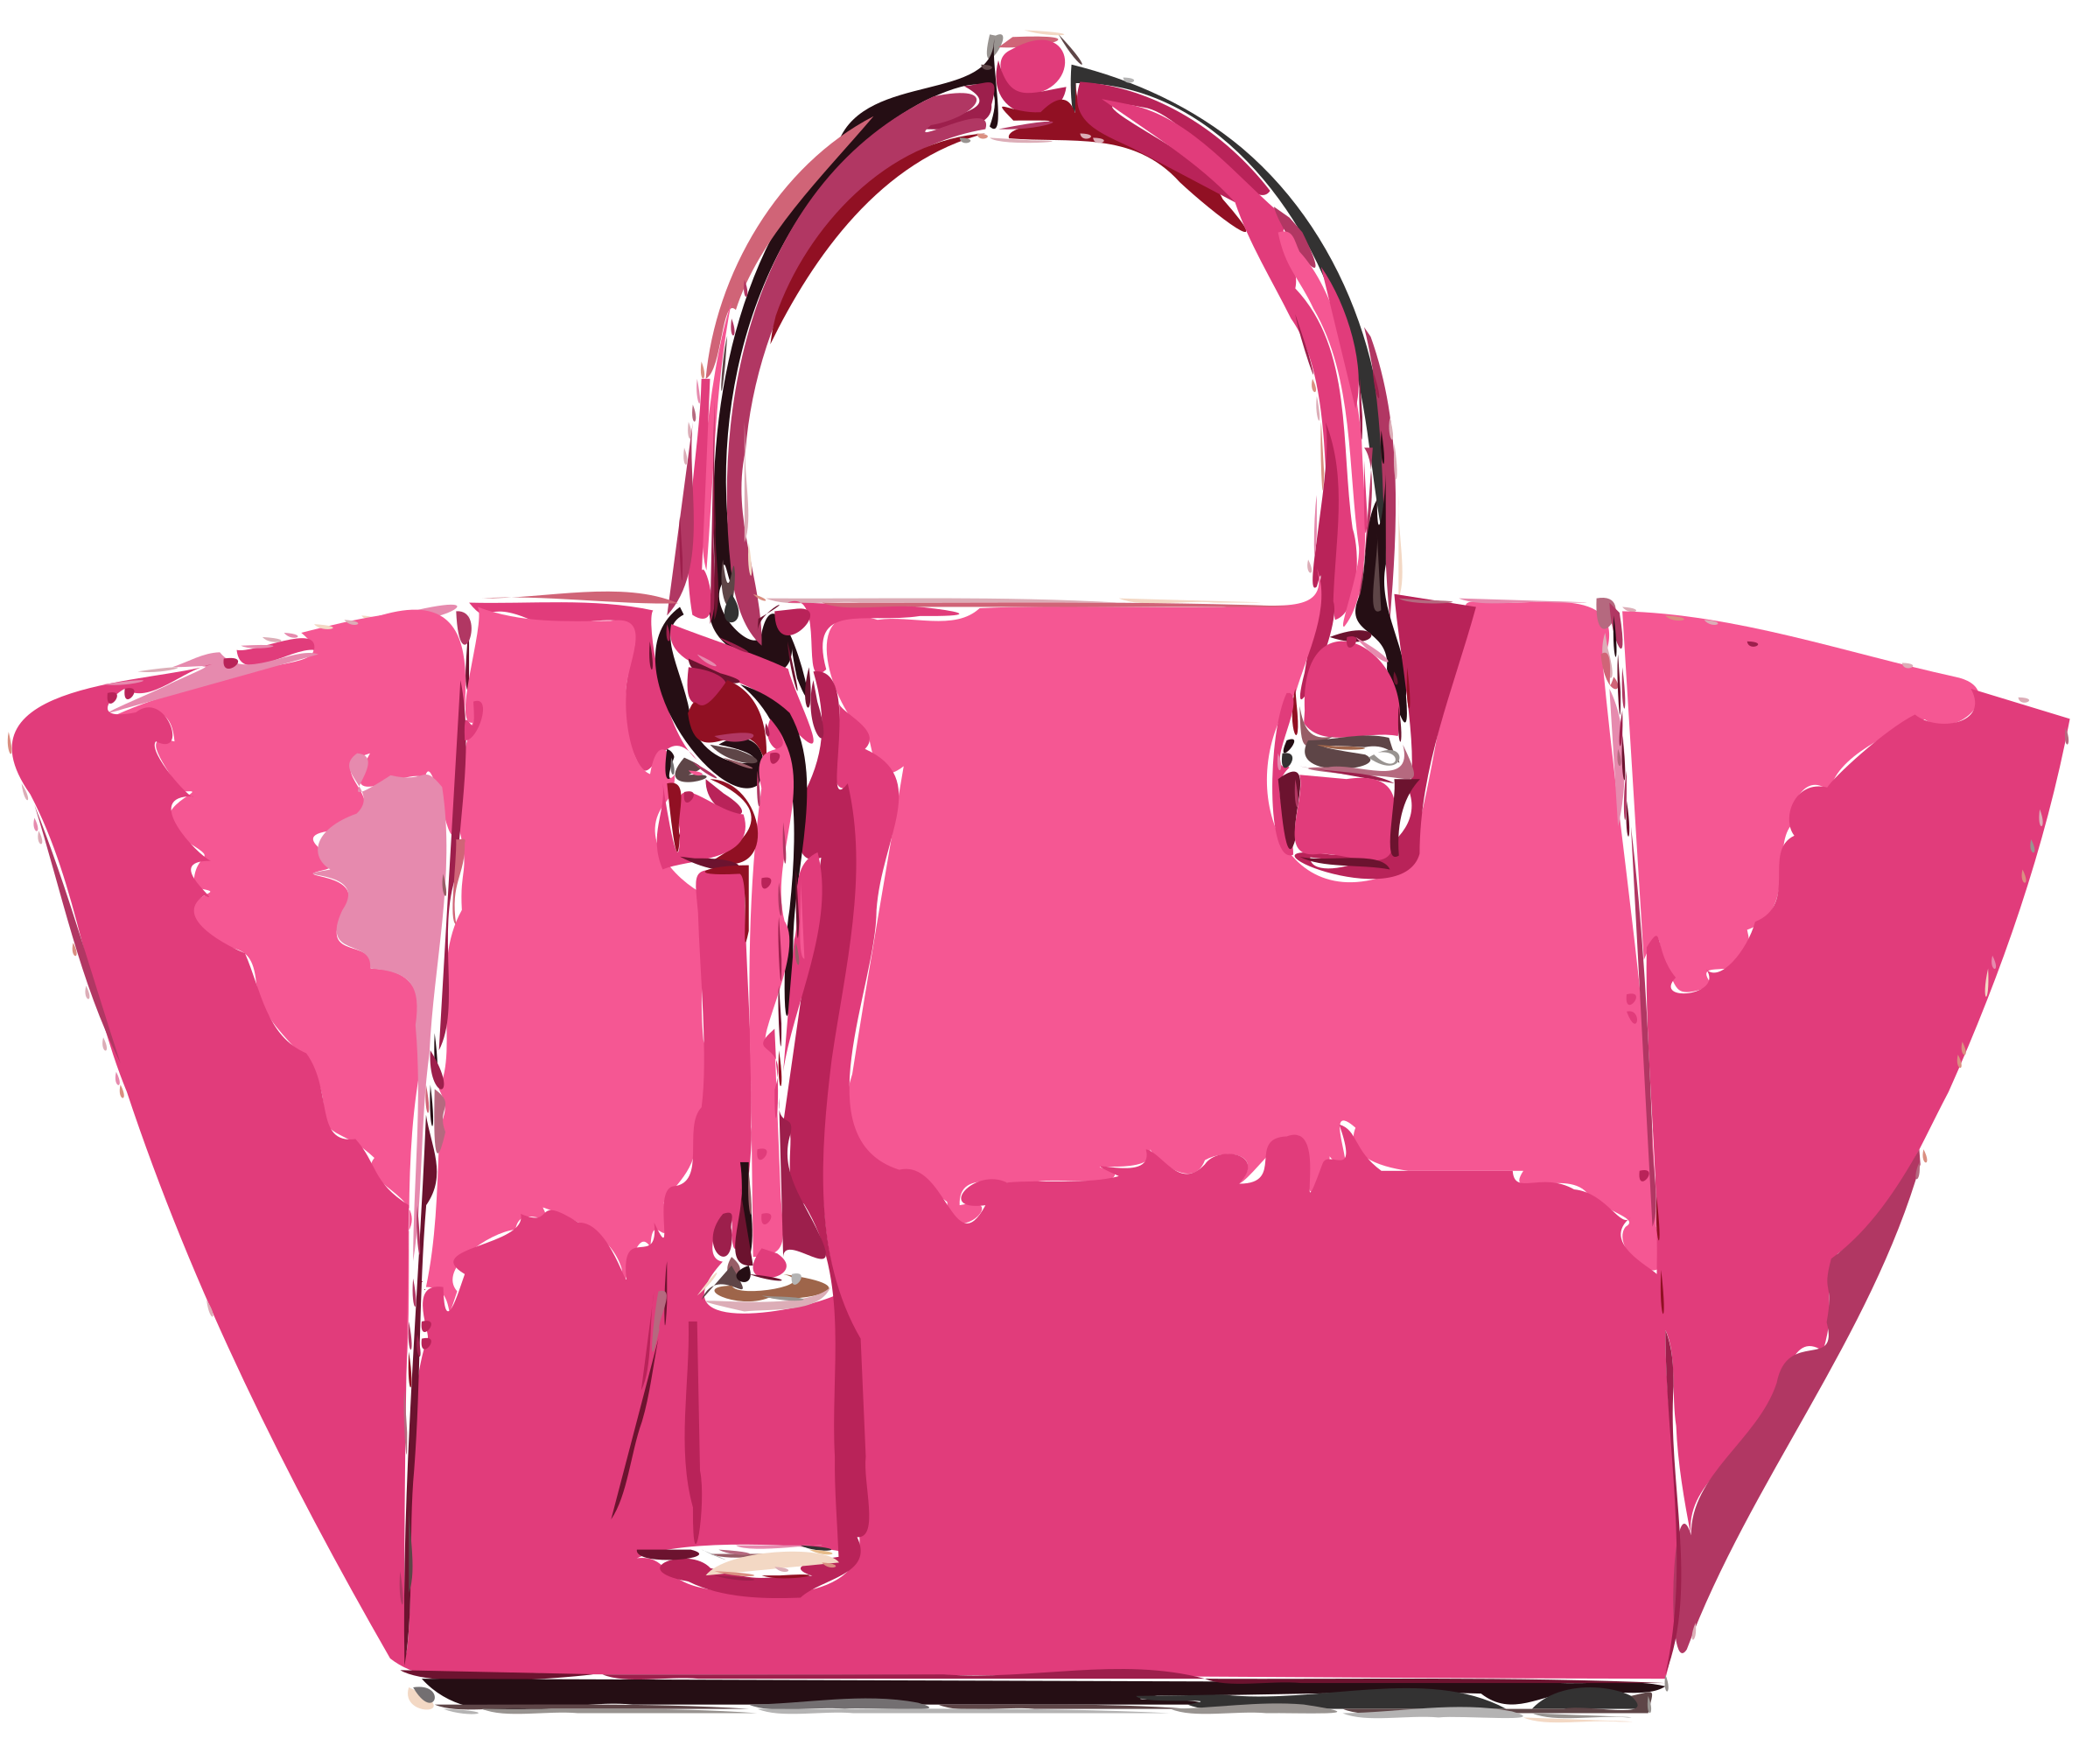 Pink leather handbag icons. Bag clipart satchel